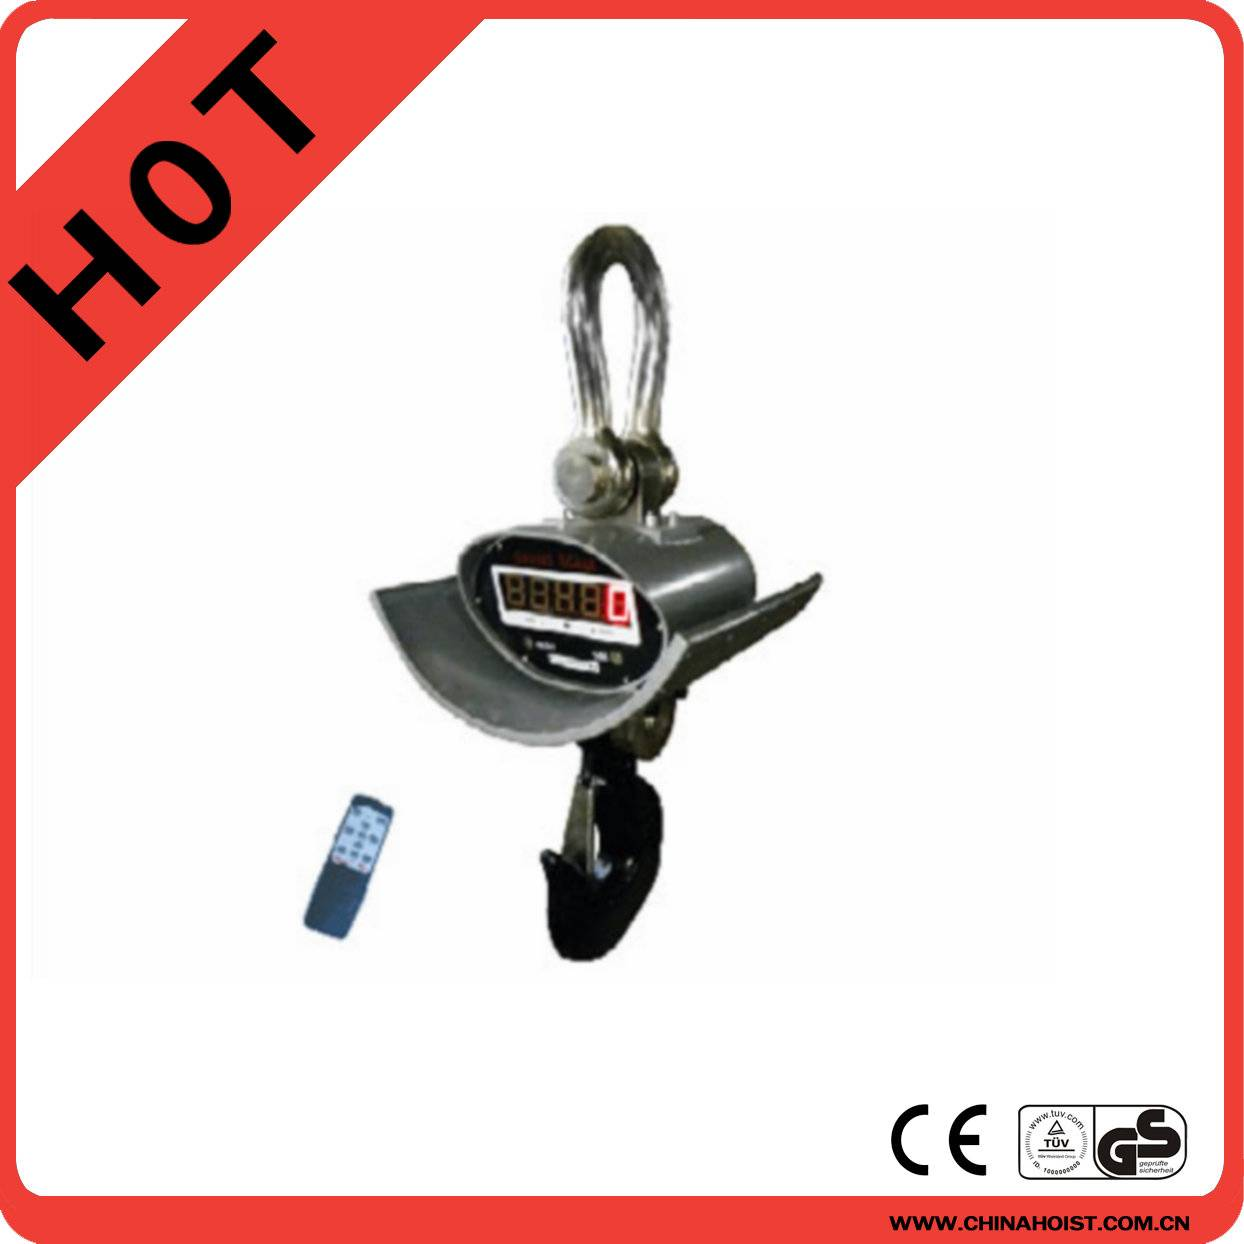 OCS-SZH Heavy proof high-temperature crane scale